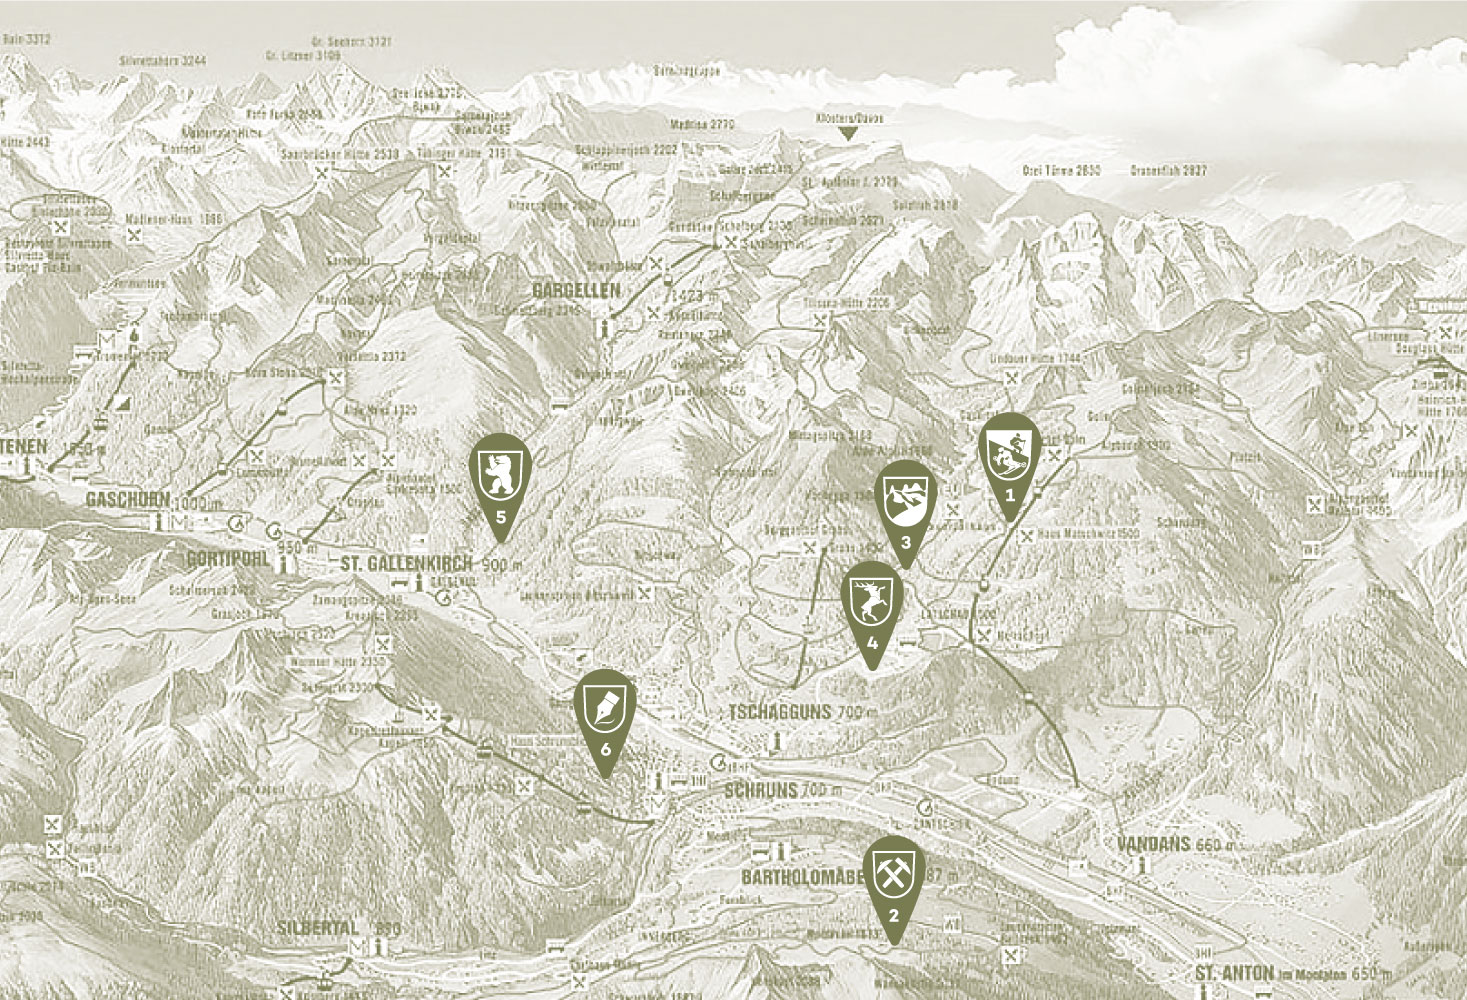 Montafon map mountain lodge